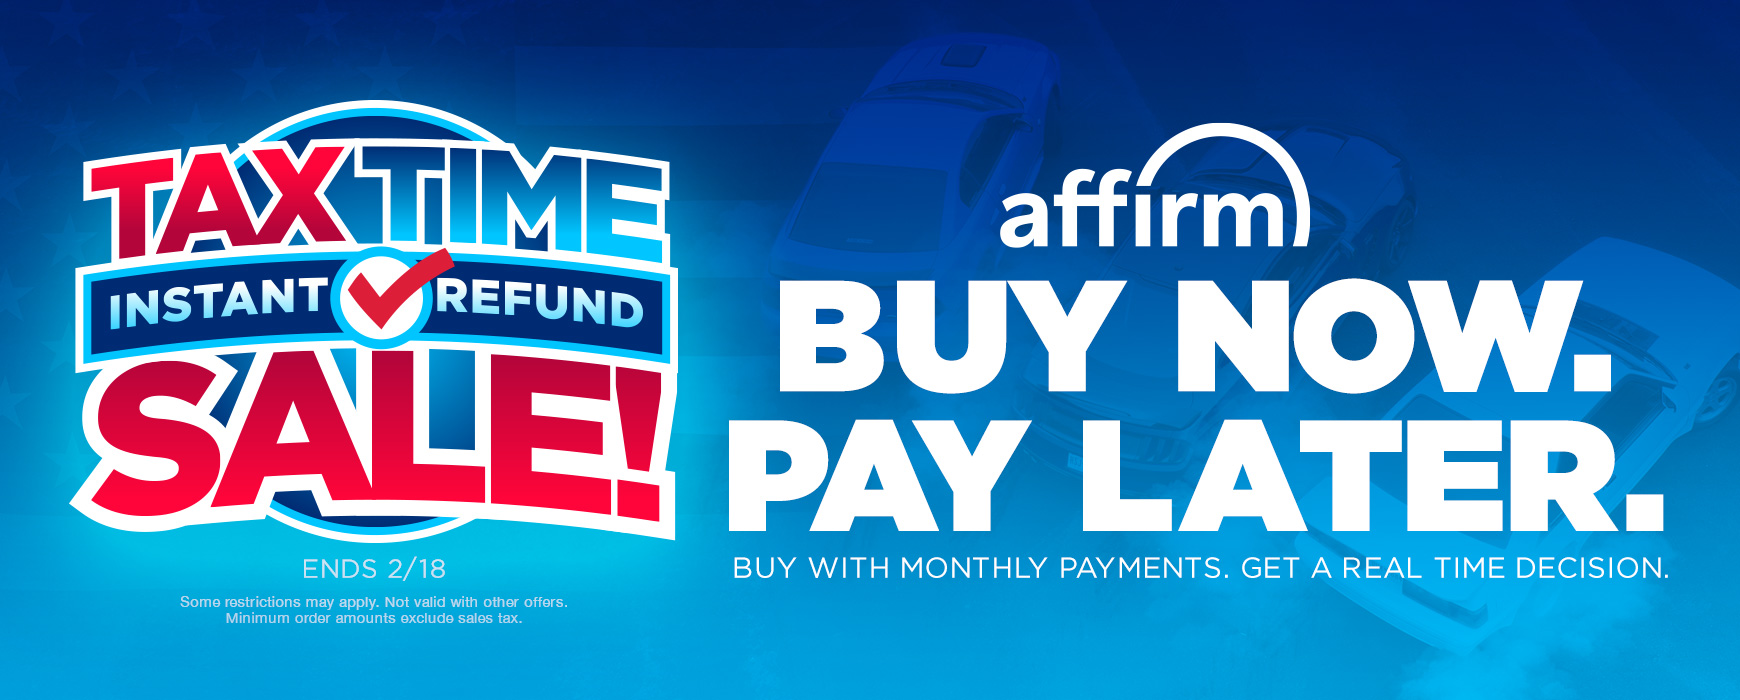 Buy Now. Pay Later w/ Affirm